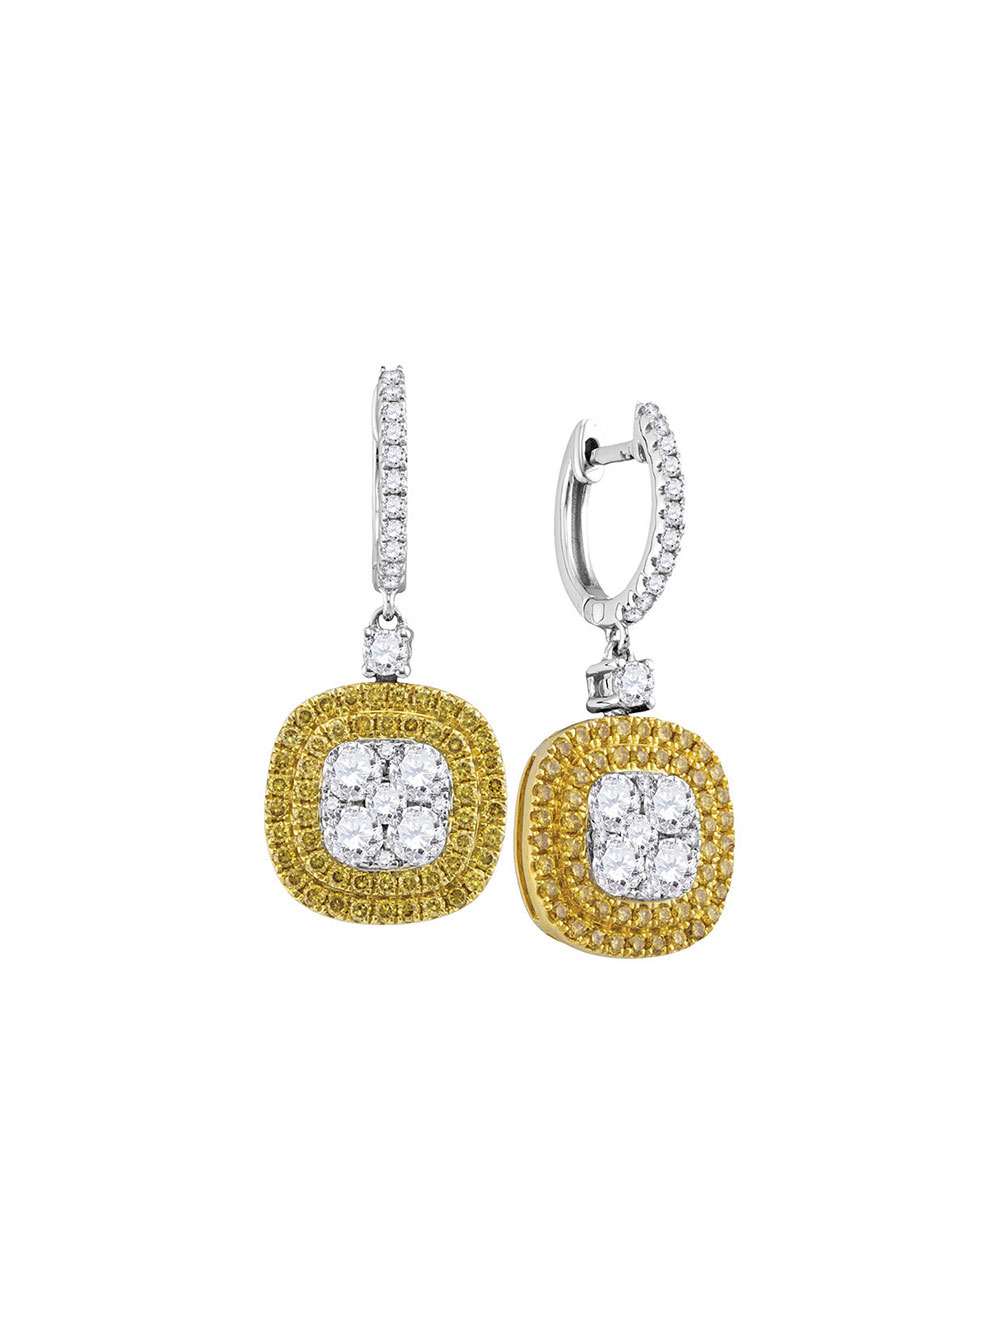 FB Jewels Solid 14k White Gold Dangle Round Gemstone Lever-back Earrings